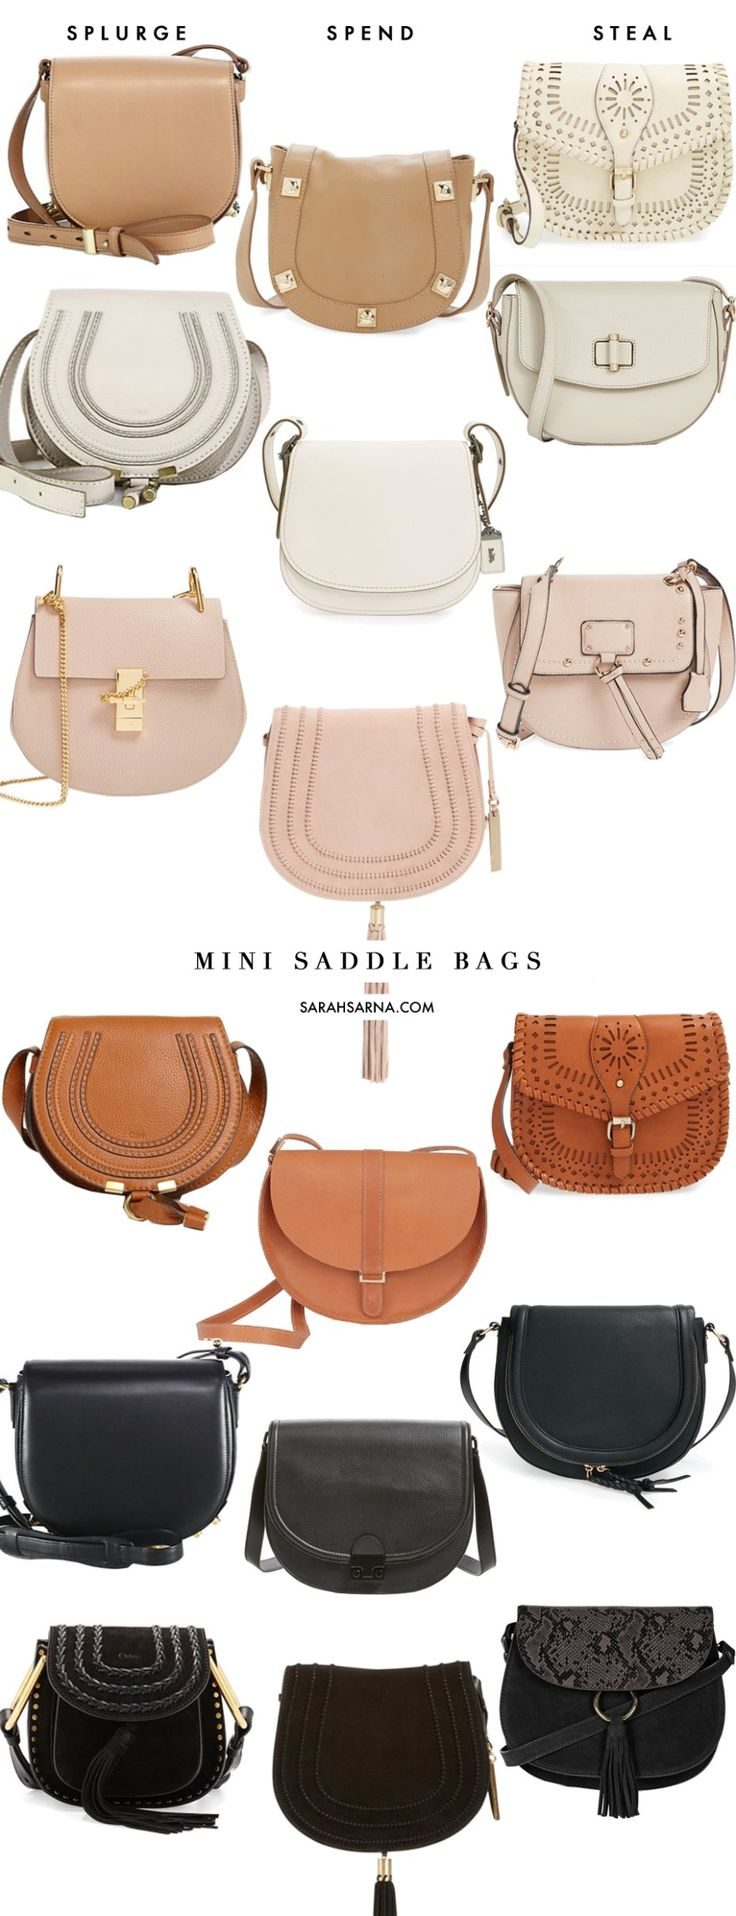 Winter Style Ideas. Winter Fashion and Winter Outfit Ideas. Splurge, Spend, or Steal?? Classic Mini Saddle Bags in every color.